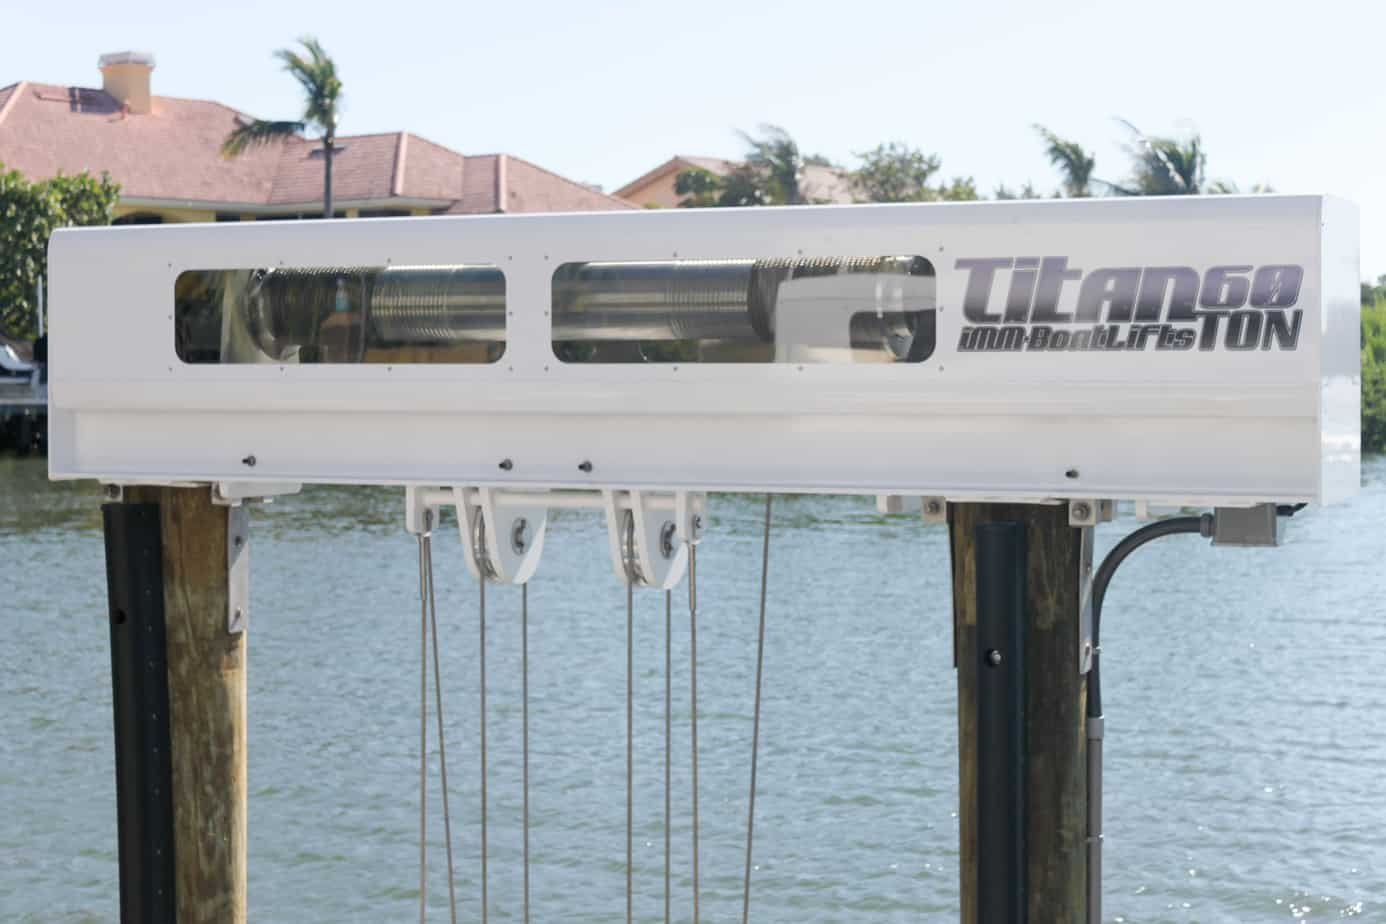 The Benefits of a Covered Drive - image patented-technology-Titan-Beam on https://www.iqboatlifts.com